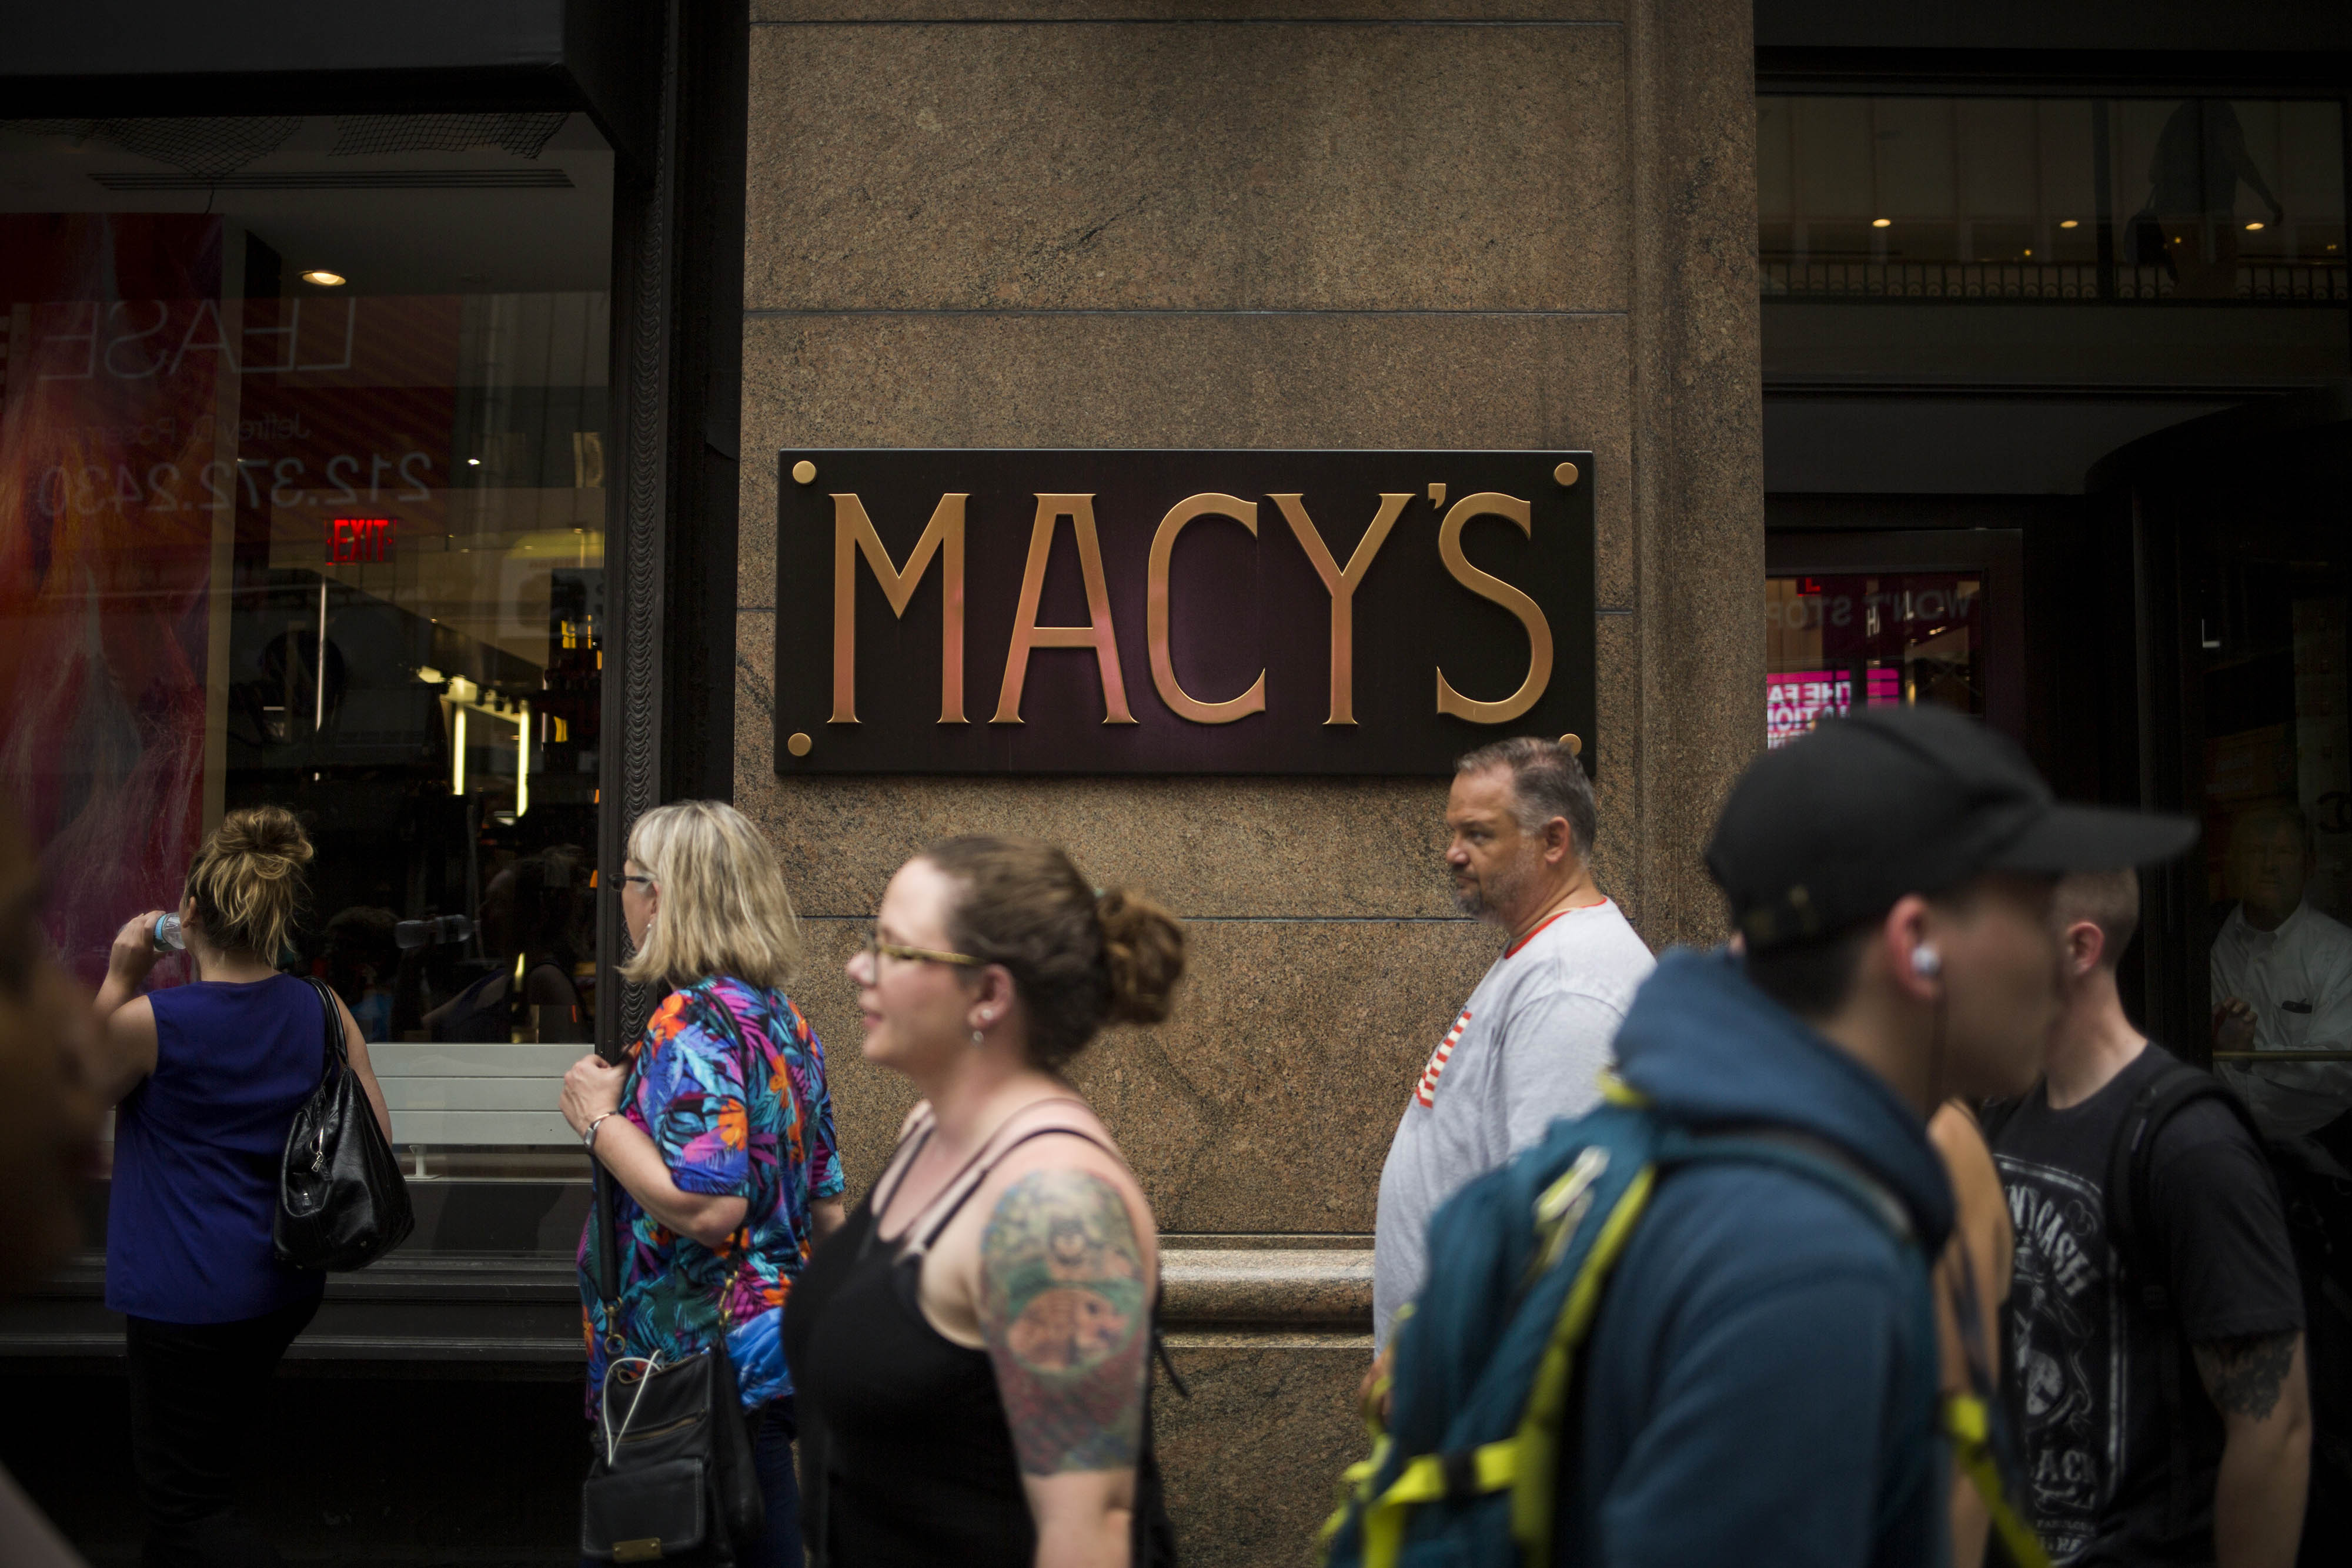 Pedestrians walk past a Macy's store in New York, U.S., on Thursday, Aug. 11, 2016.